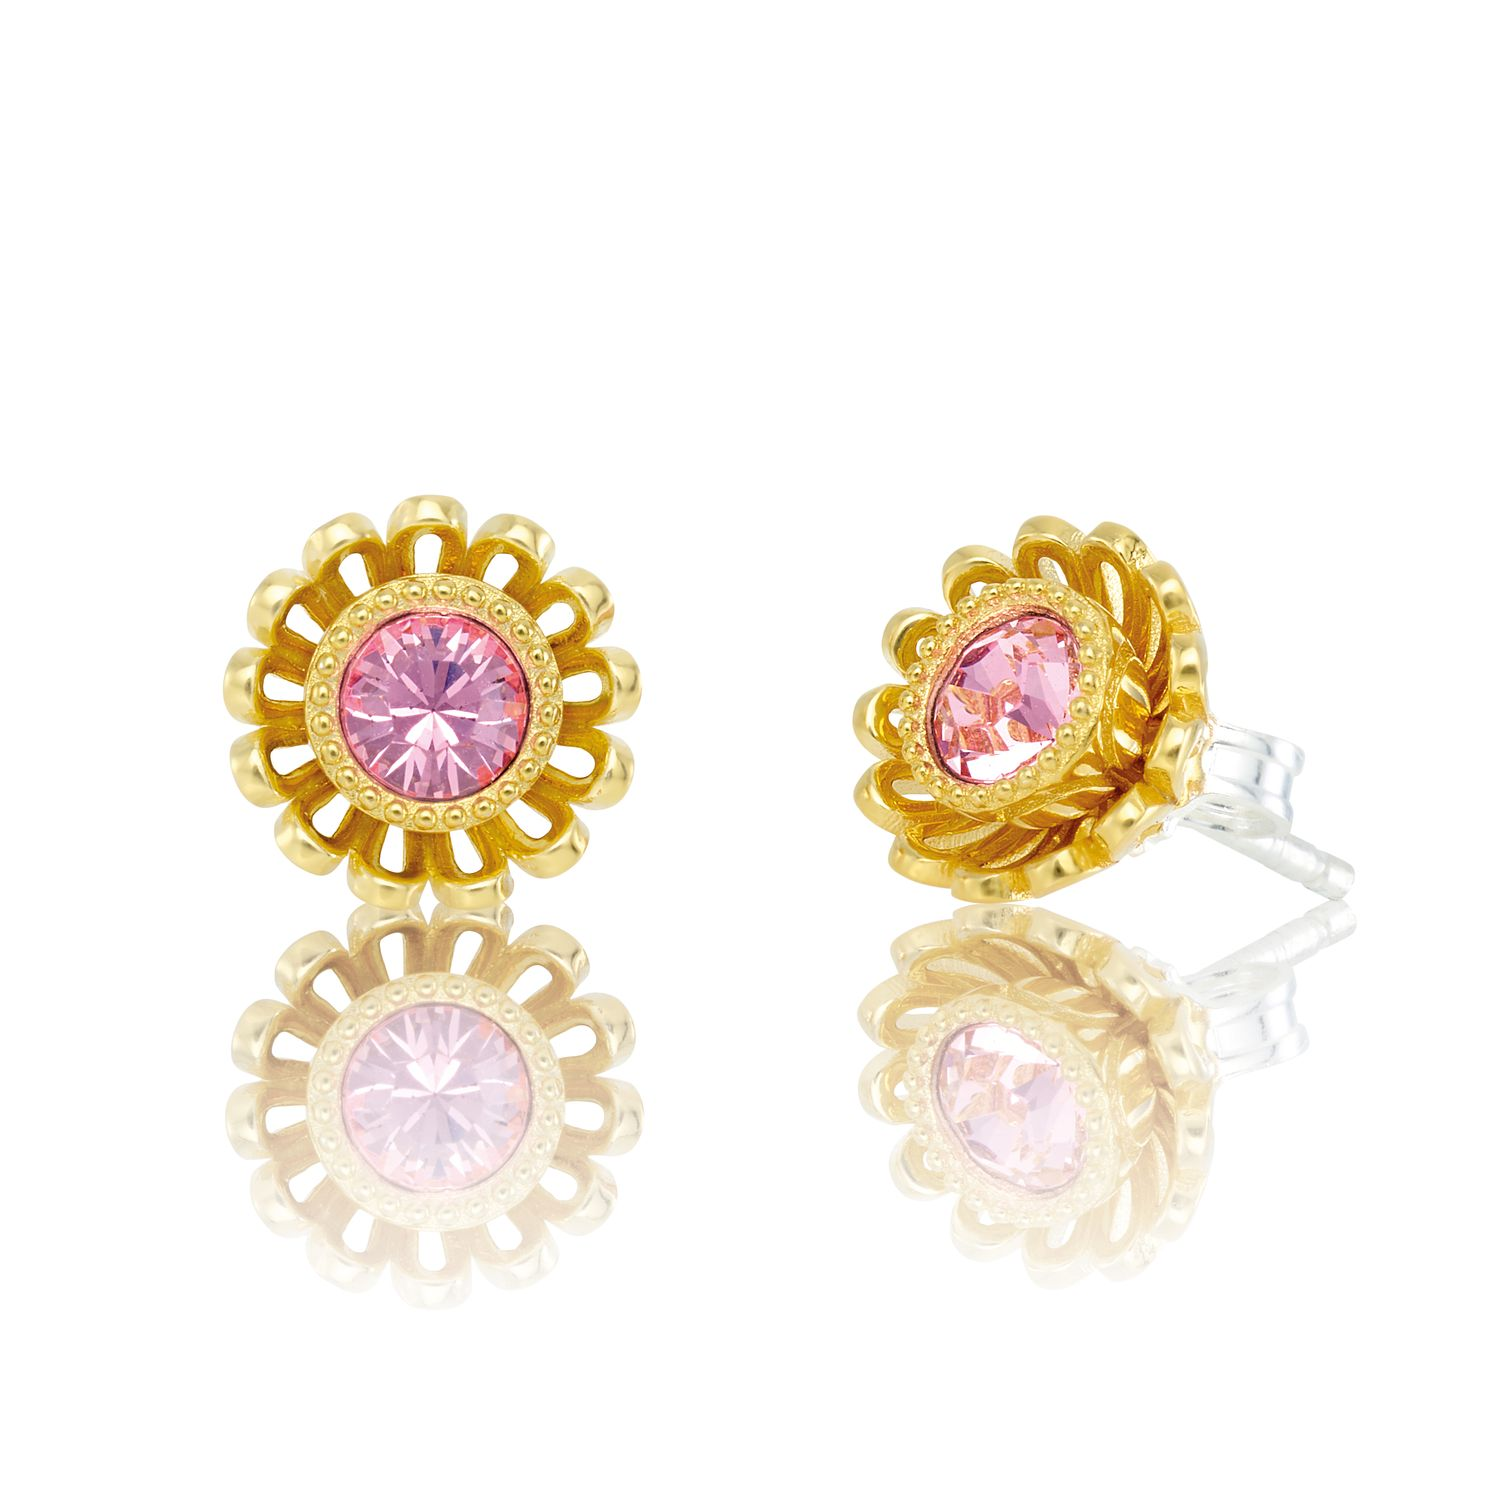 Chamilia Daisy Post Stud Earrings with Crystal - Product number 2221616